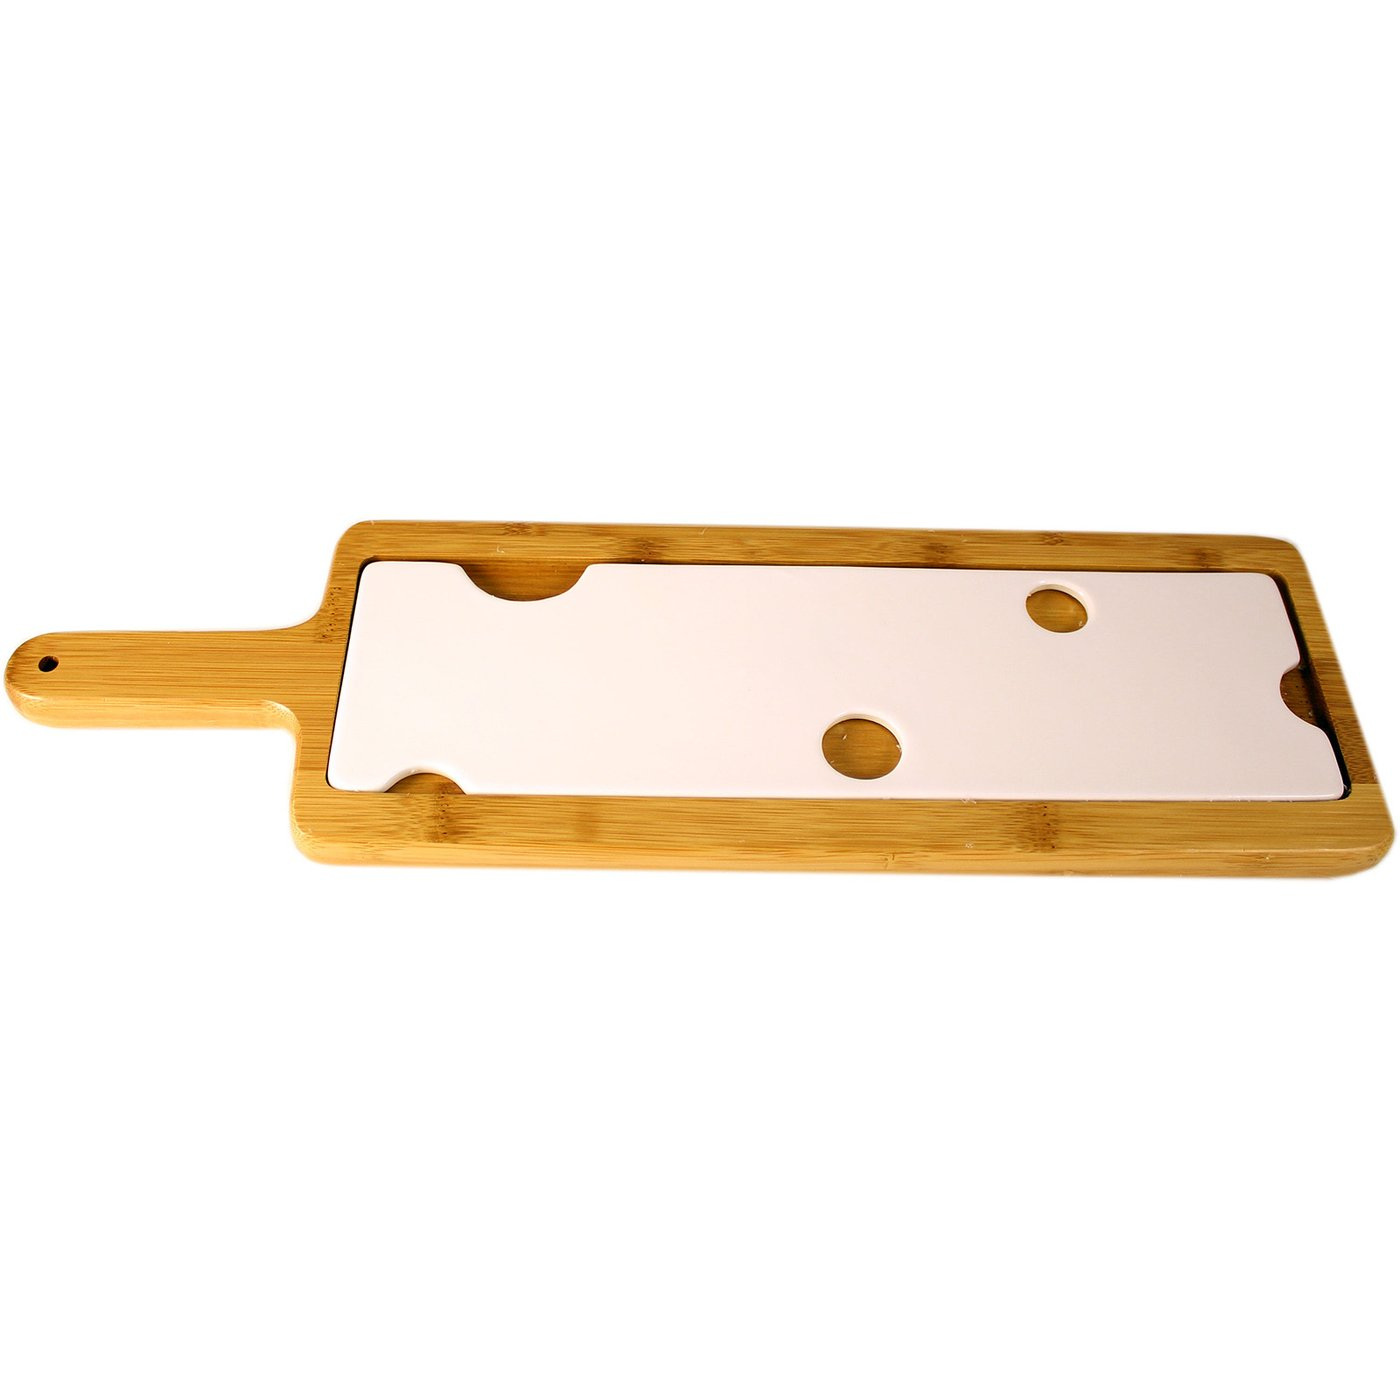 AKT Swiss - Wooden/Ceramic Cheese Board